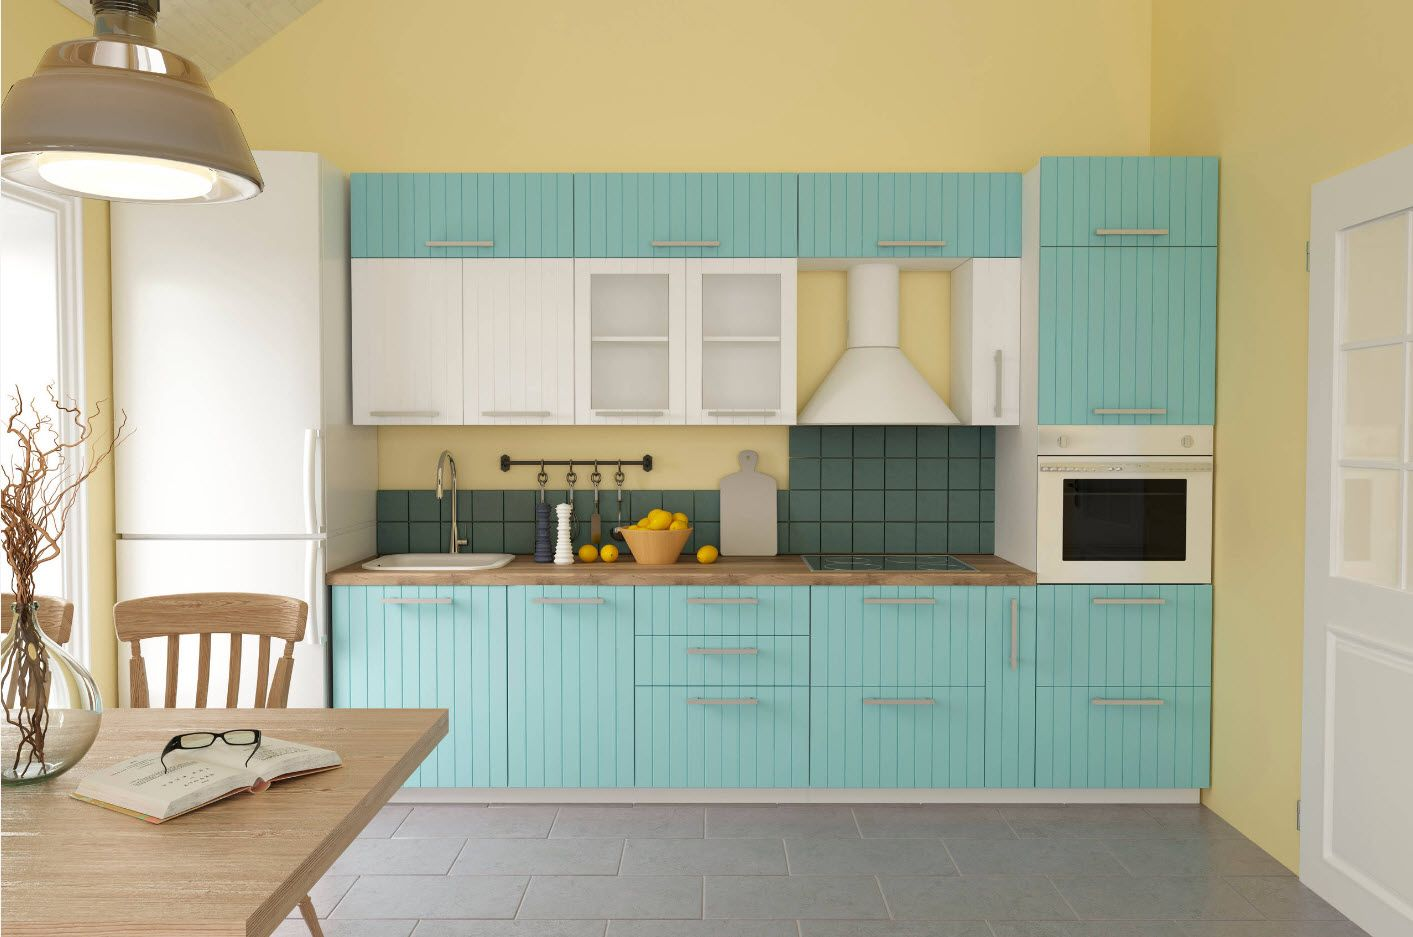 modern cottage interior design tips trends and features 2017 turquoise facades of the kitchen furniture set and gray laminate at the floor